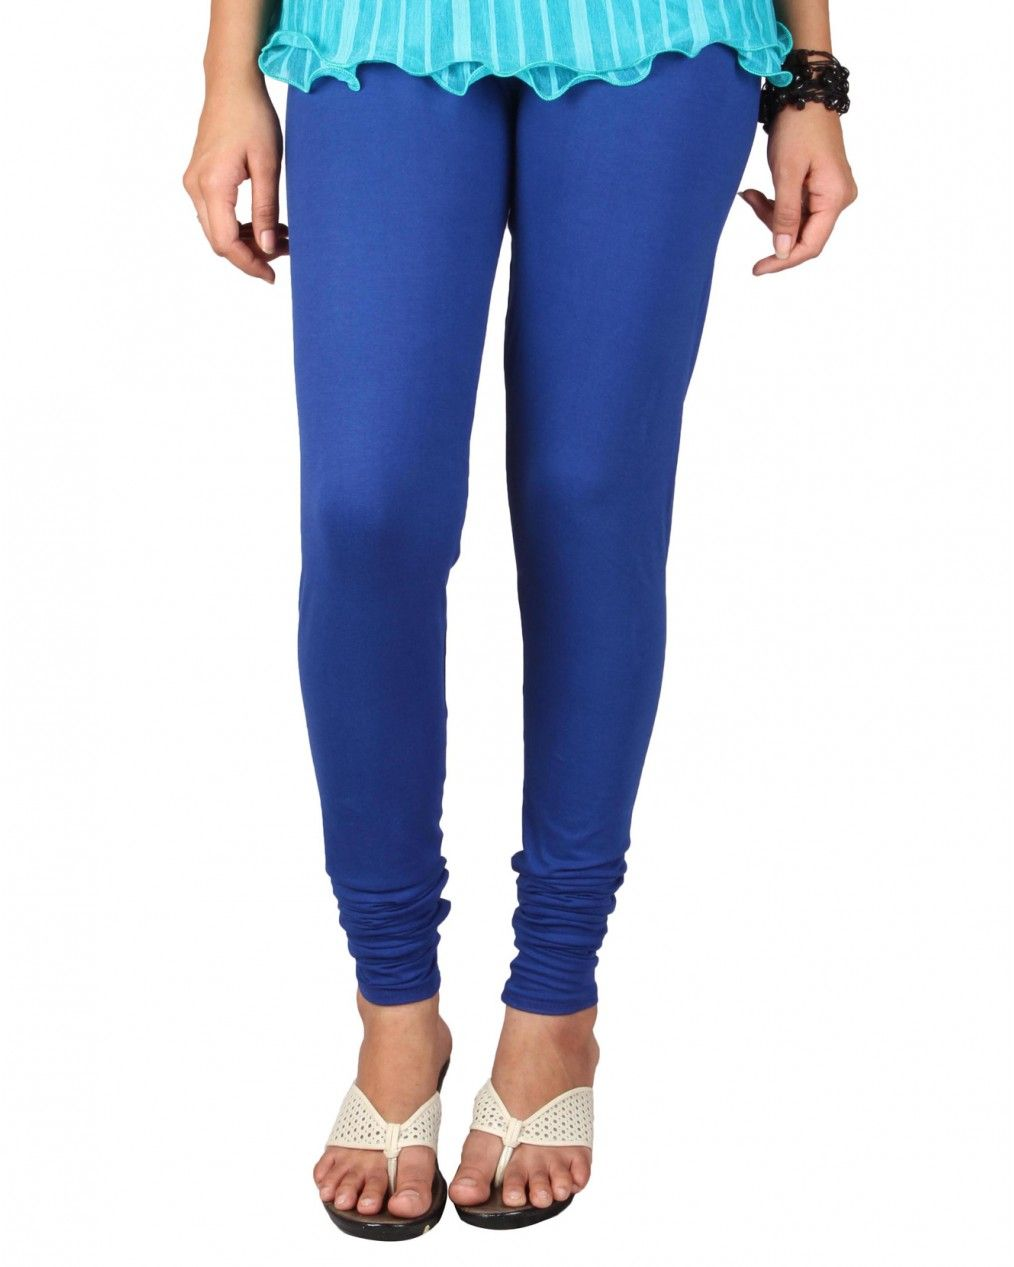 Royal Blue color Leggings | Leggings | Pinterest | Royal blue ...